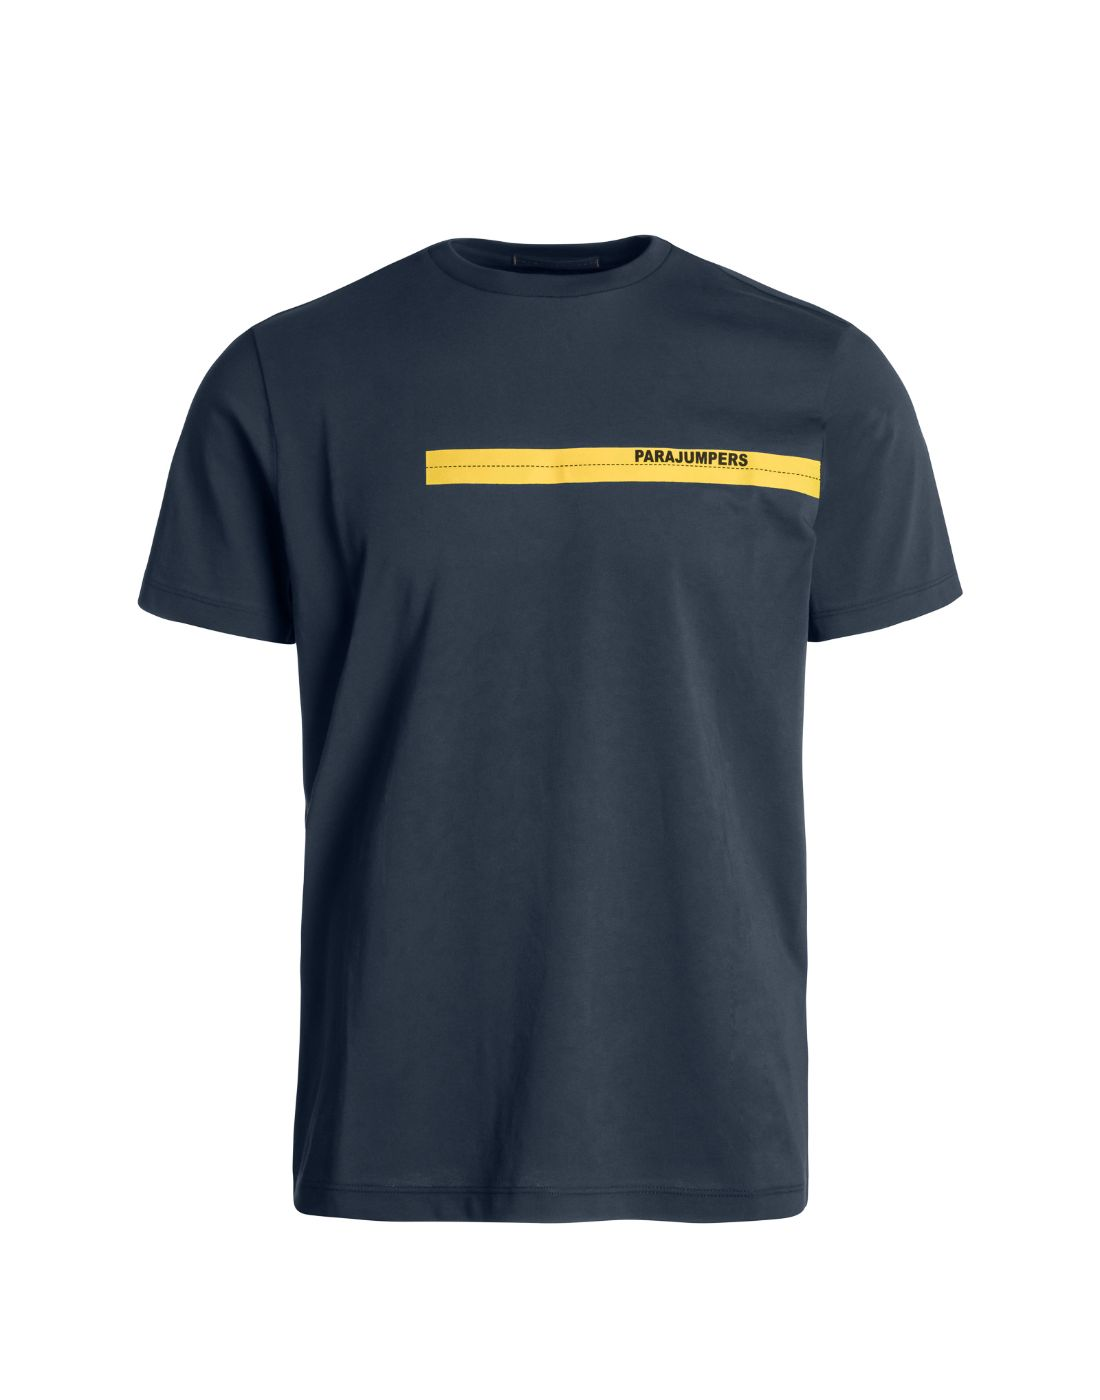 parajumpers may 2021 yellow line t shirt